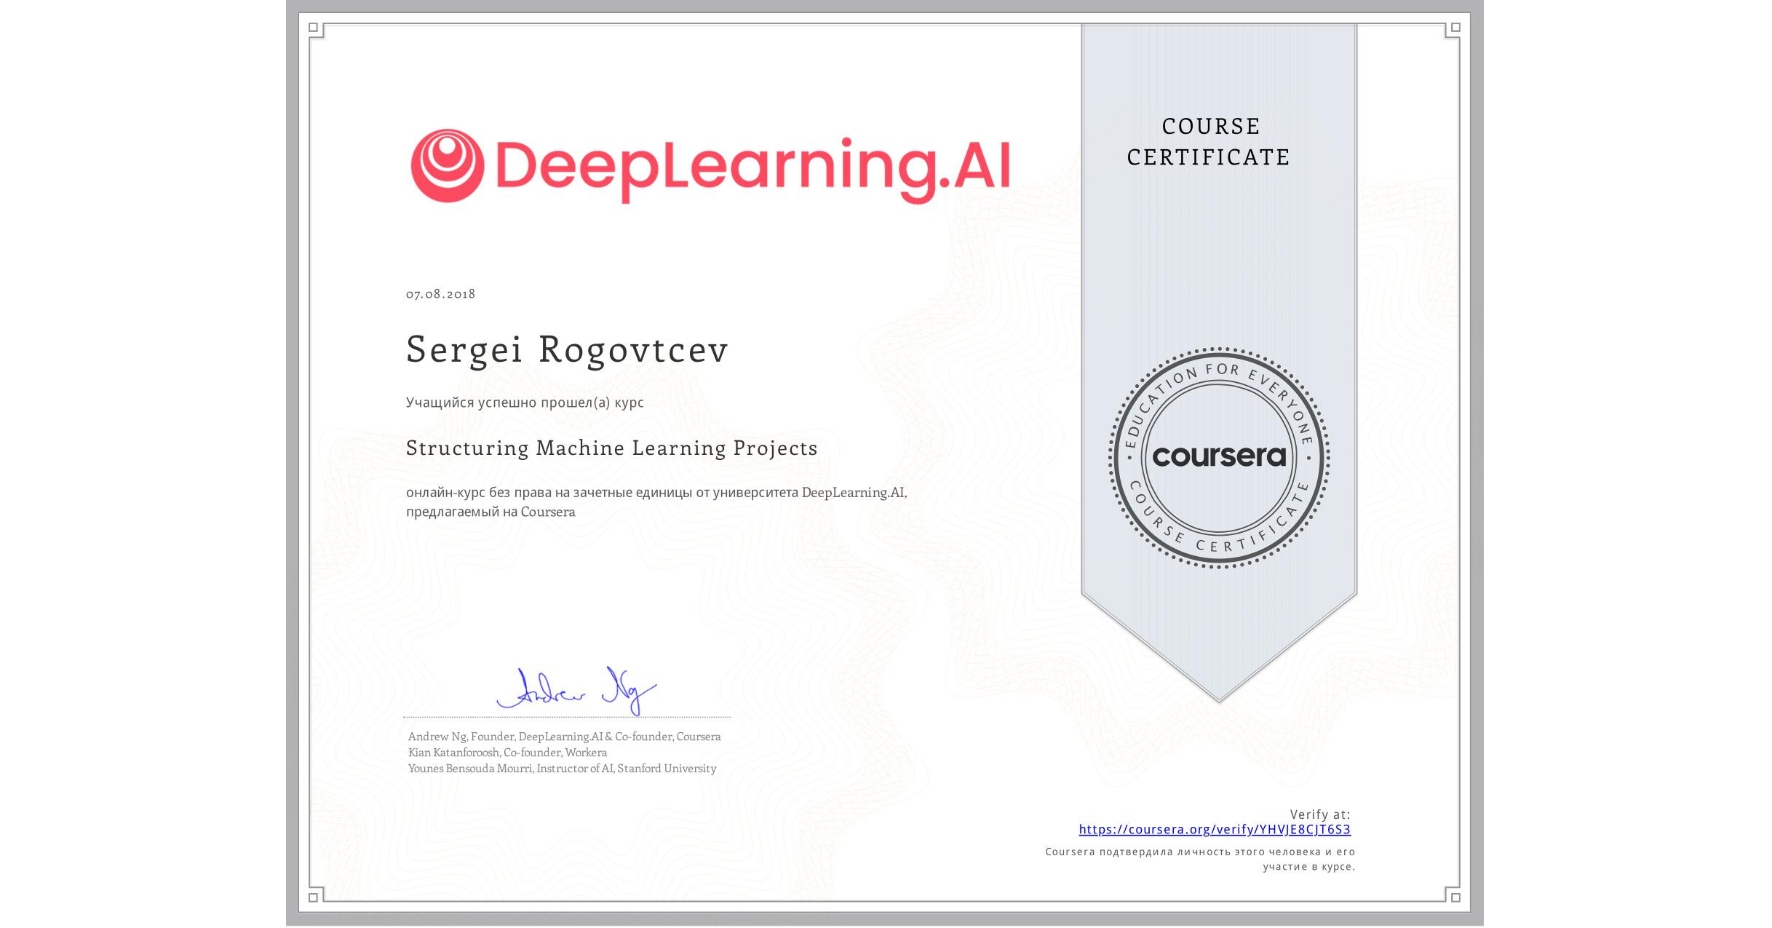 View certificate for Sergei Rogovtcev, Structuring Machine Learning Projects, an online non-credit course authorized by DeepLearning.AI and offered through Coursera